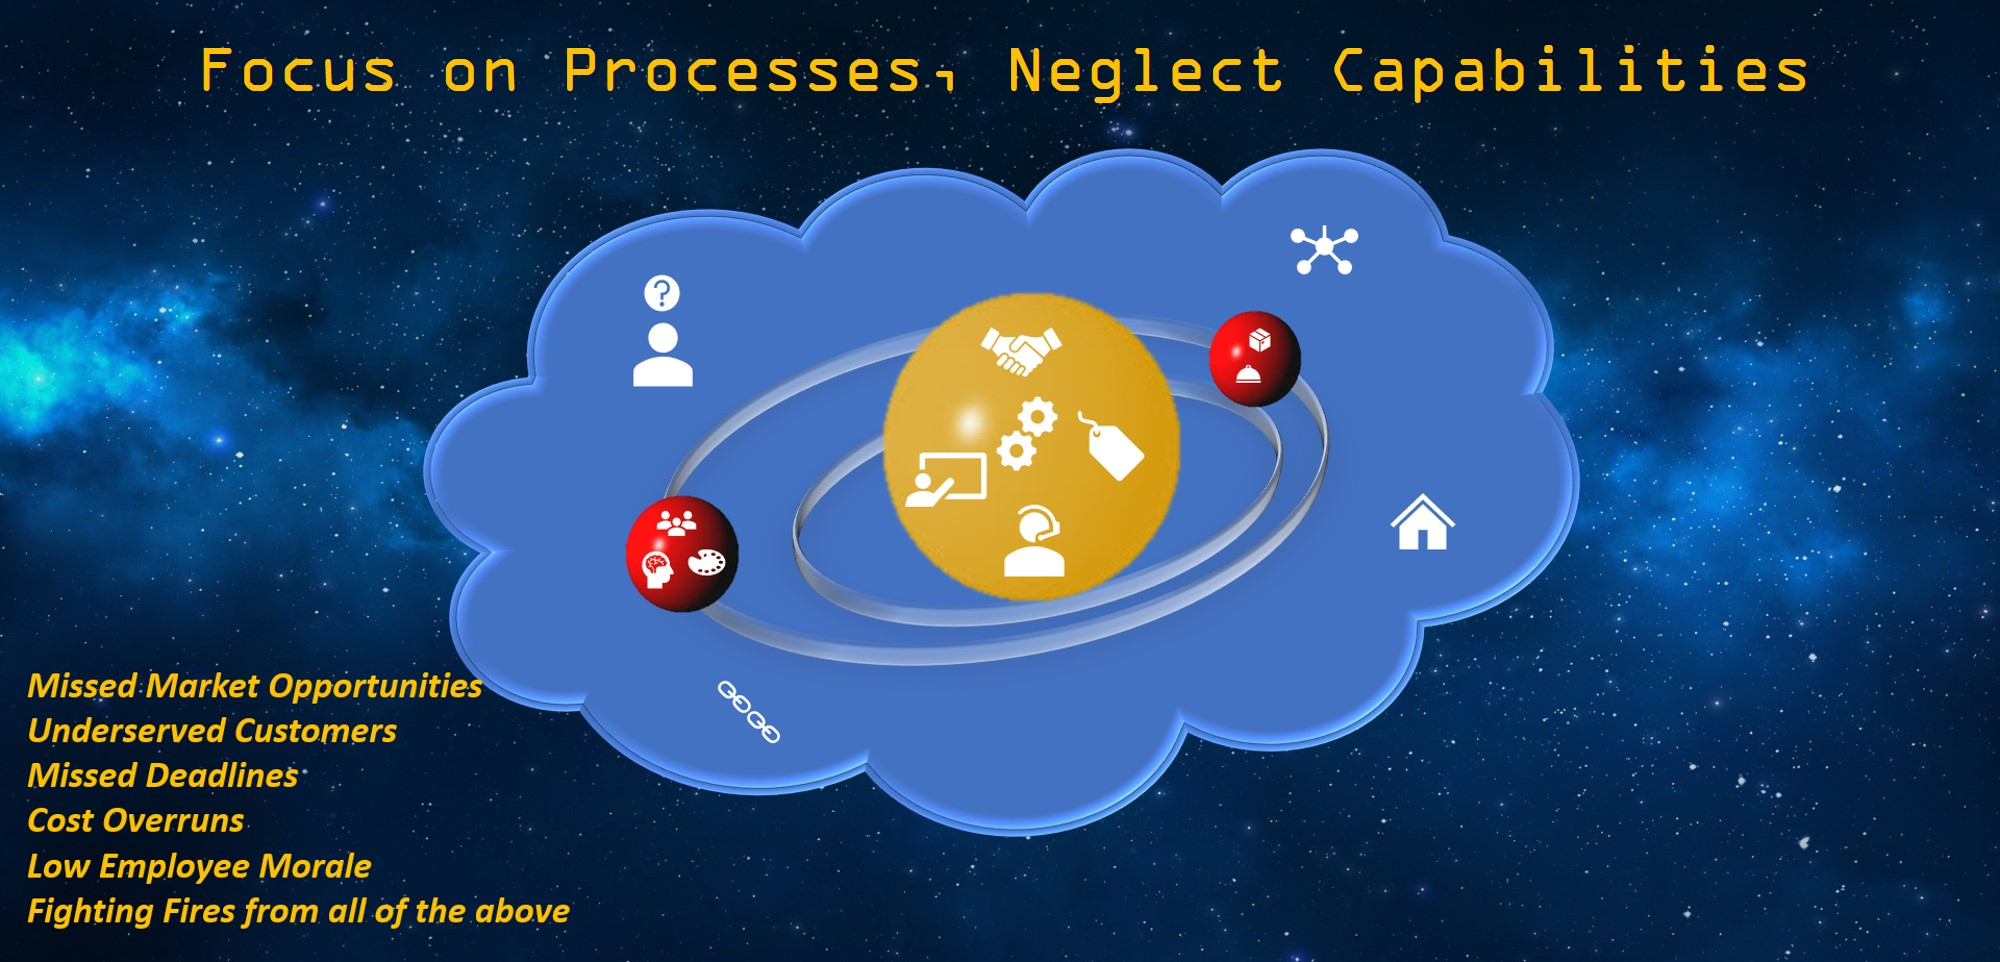 Neglecting Capabilities can also cause a business to miss Market opportunities